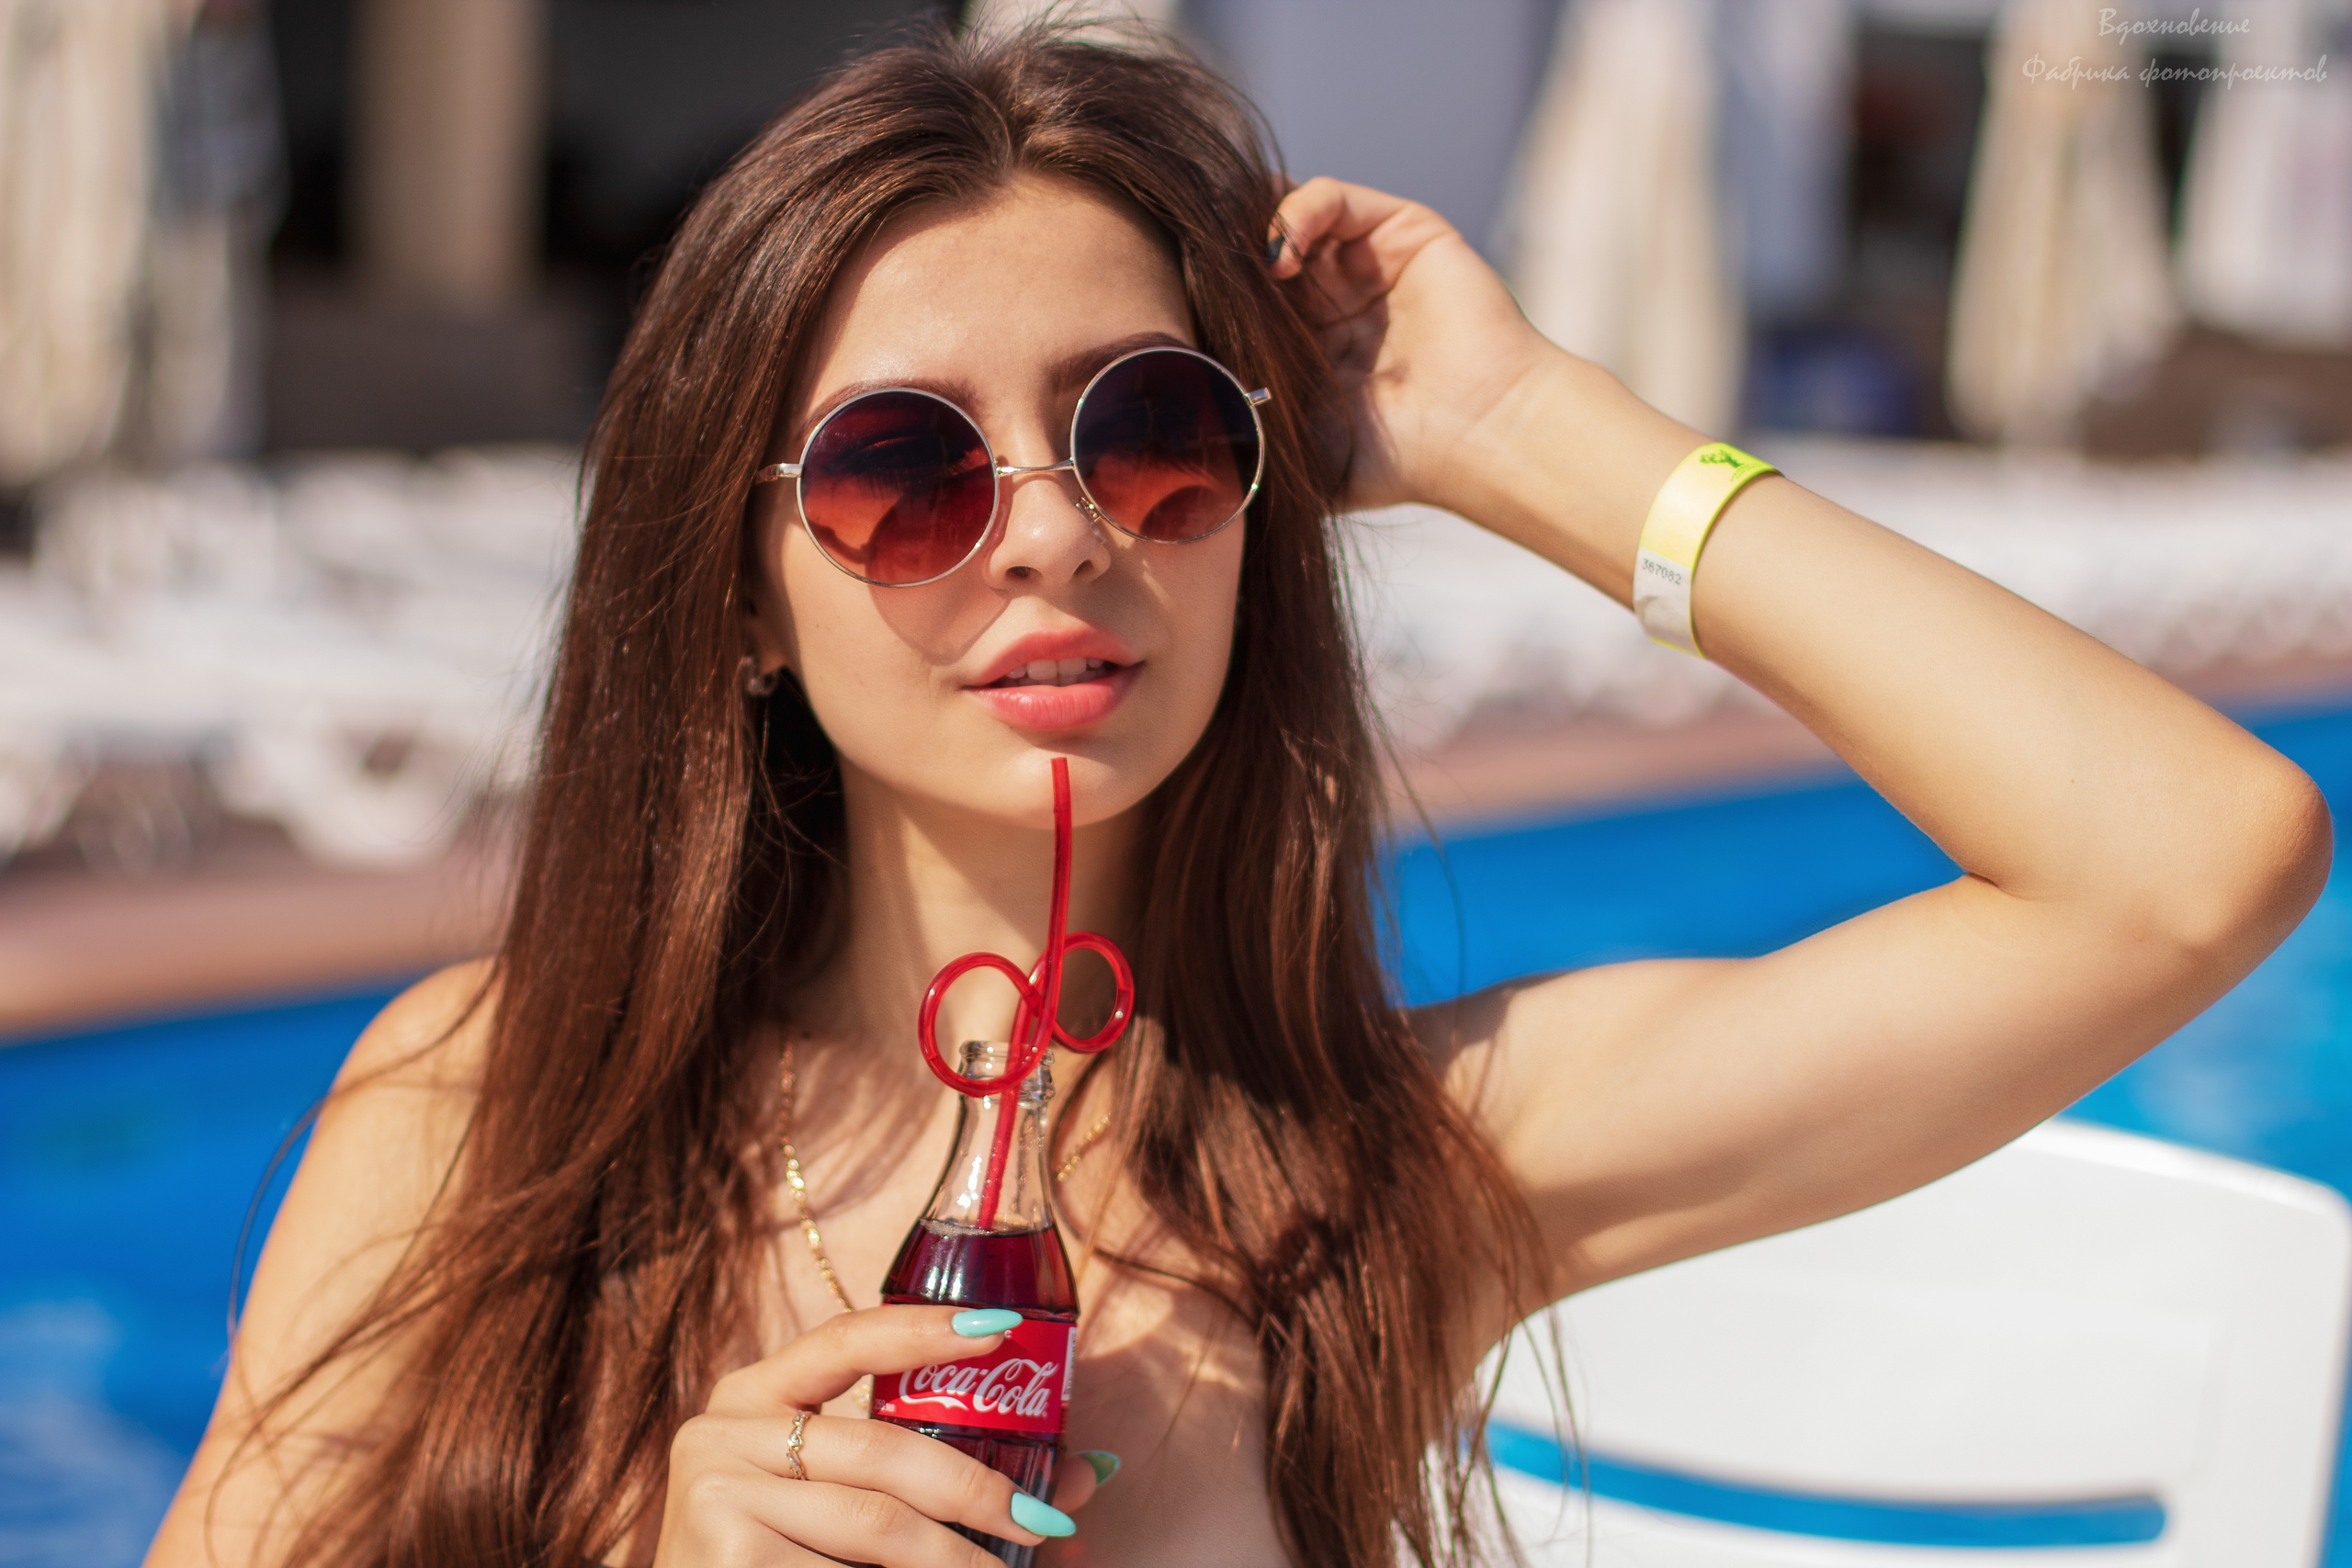 depth of field sunglasses painted nails women looking away necklace coca-cola model bare shoulders long hair portrait women outdoors women with shades brunette pink lipstick